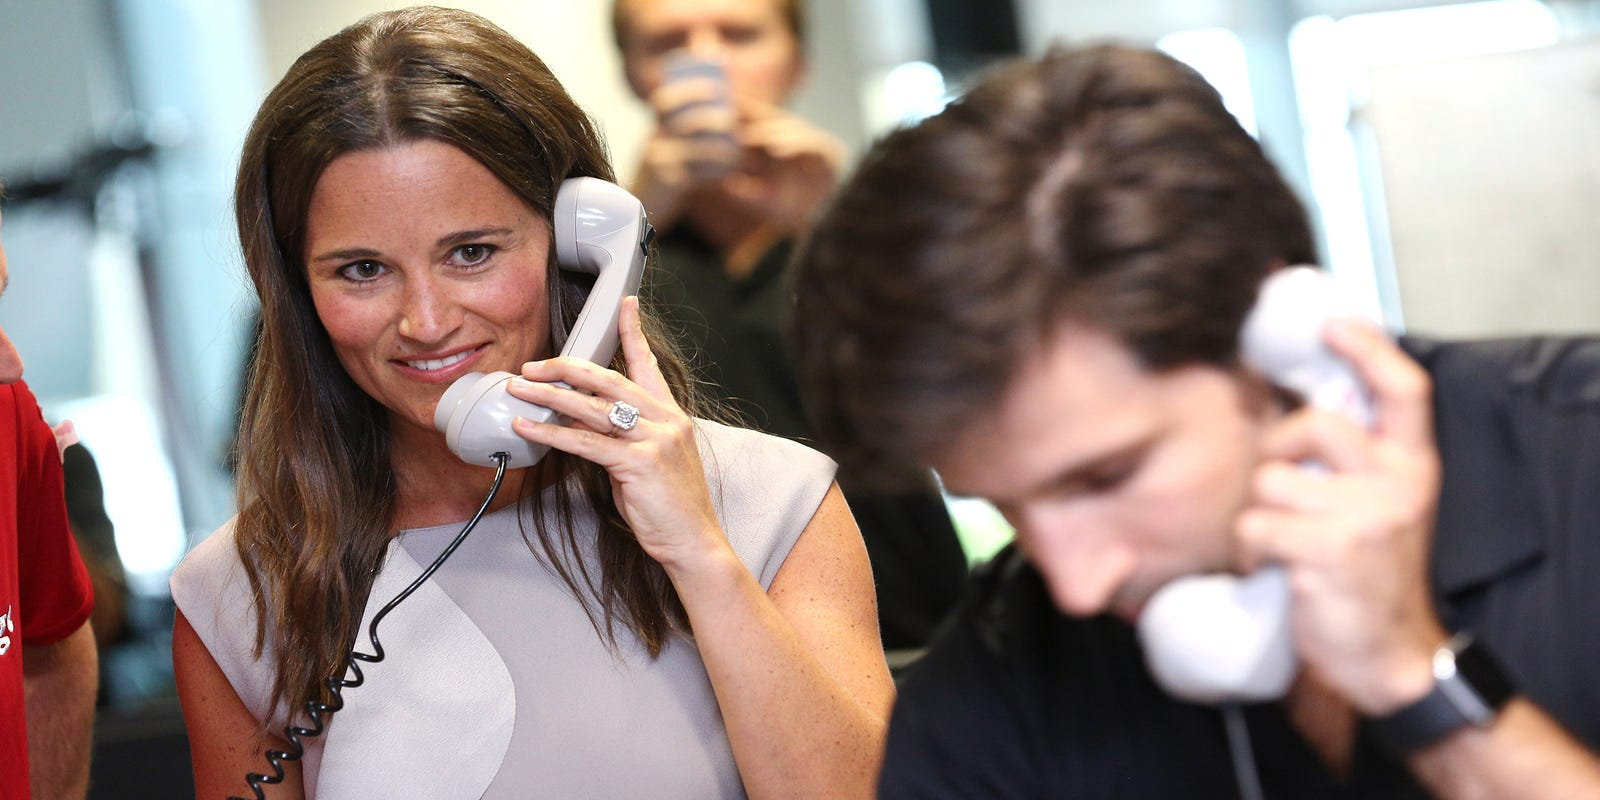 Soon-to-wed Pippa Middleton says she resents being called 'socialite '